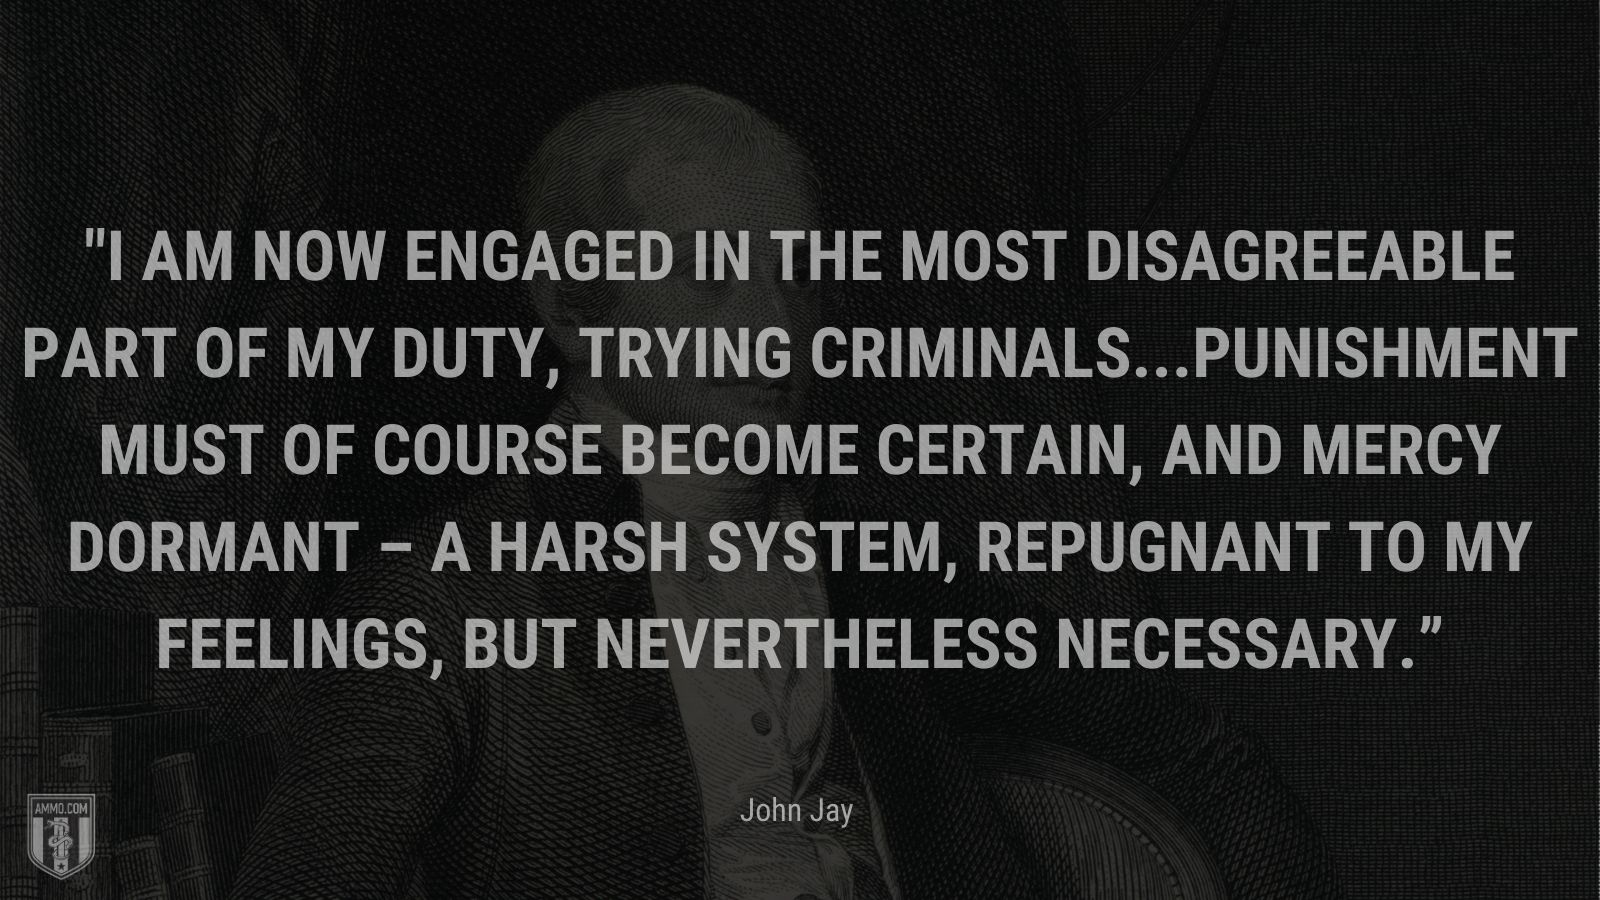 """""""I am now engaged in the most disagreeable part of my duty, trying criminals...Punishment must of course become certain, and mercy dormant – a harsh system, repugnant to my feelings, but nevertheless necessary."""" - John Jay"""